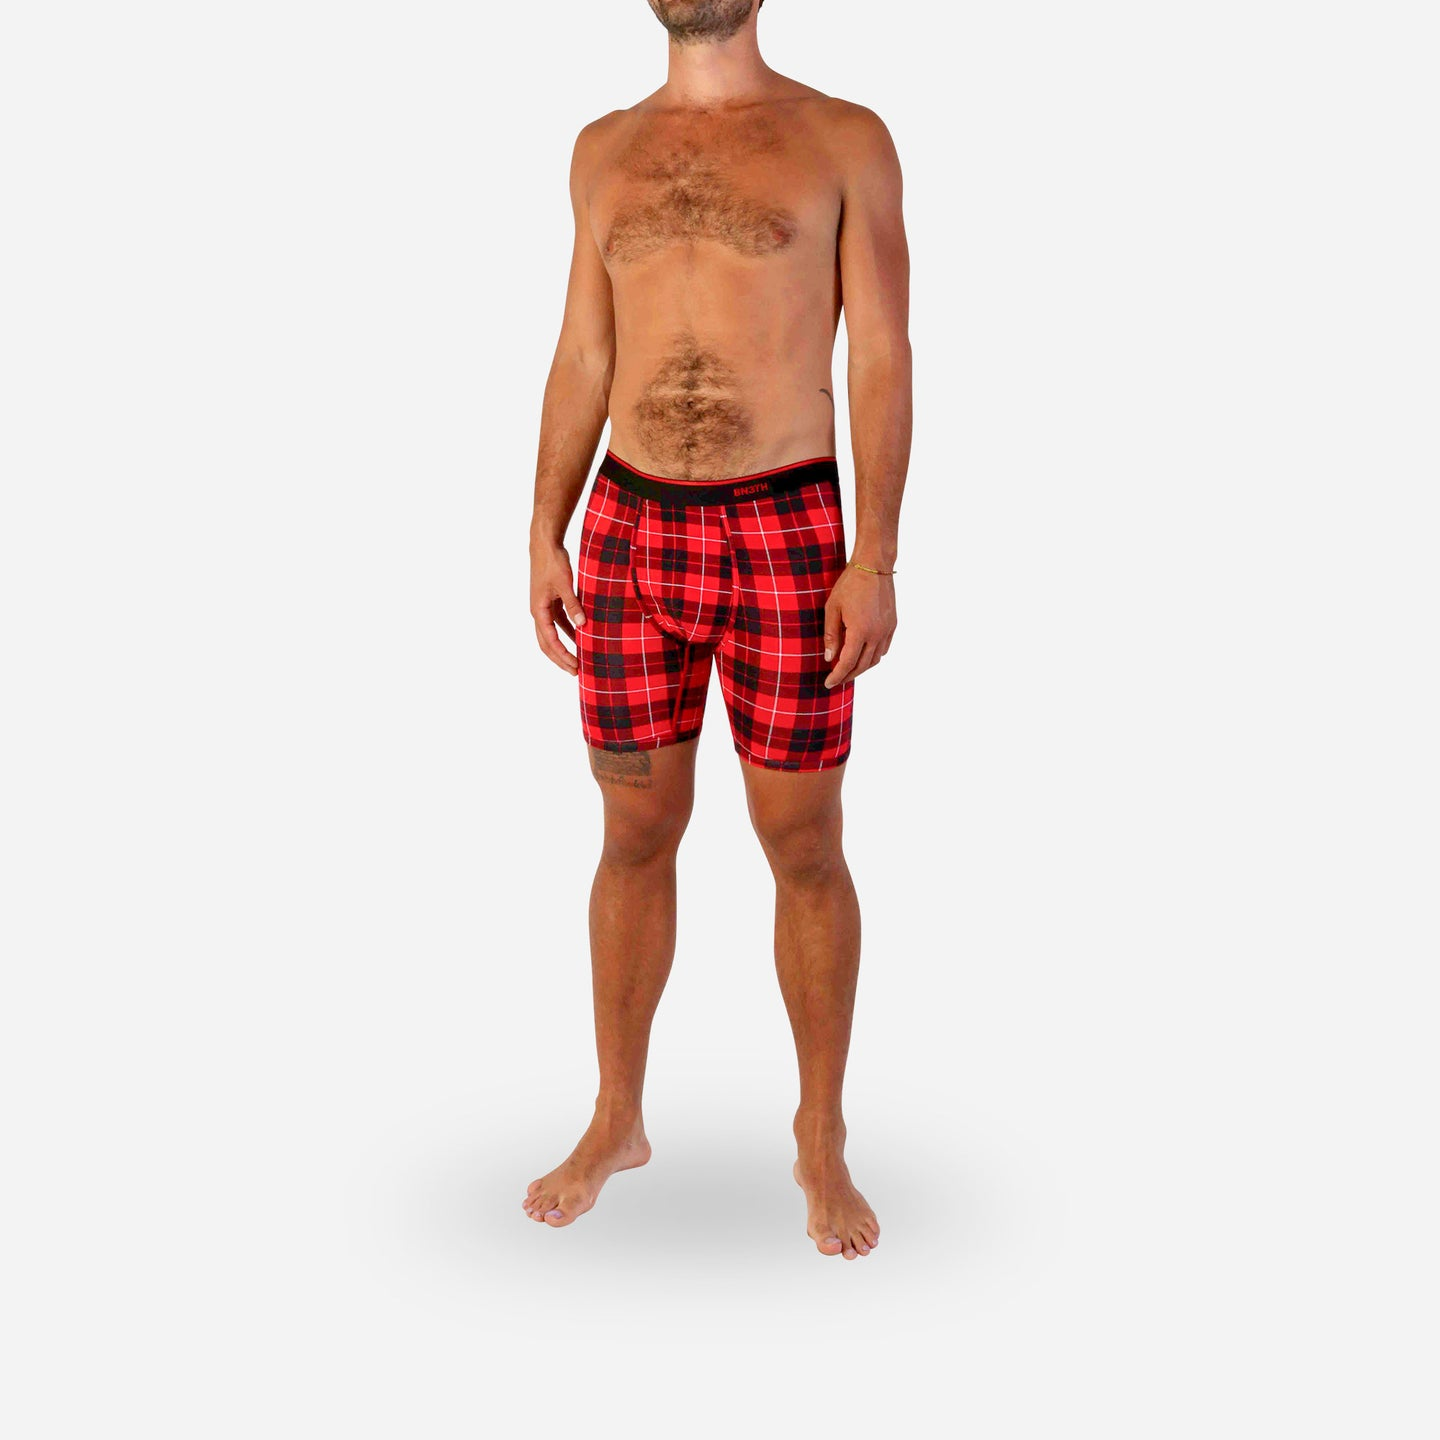 CLASSICS BOXER BRIEF: FIRESIDE PLAID RED